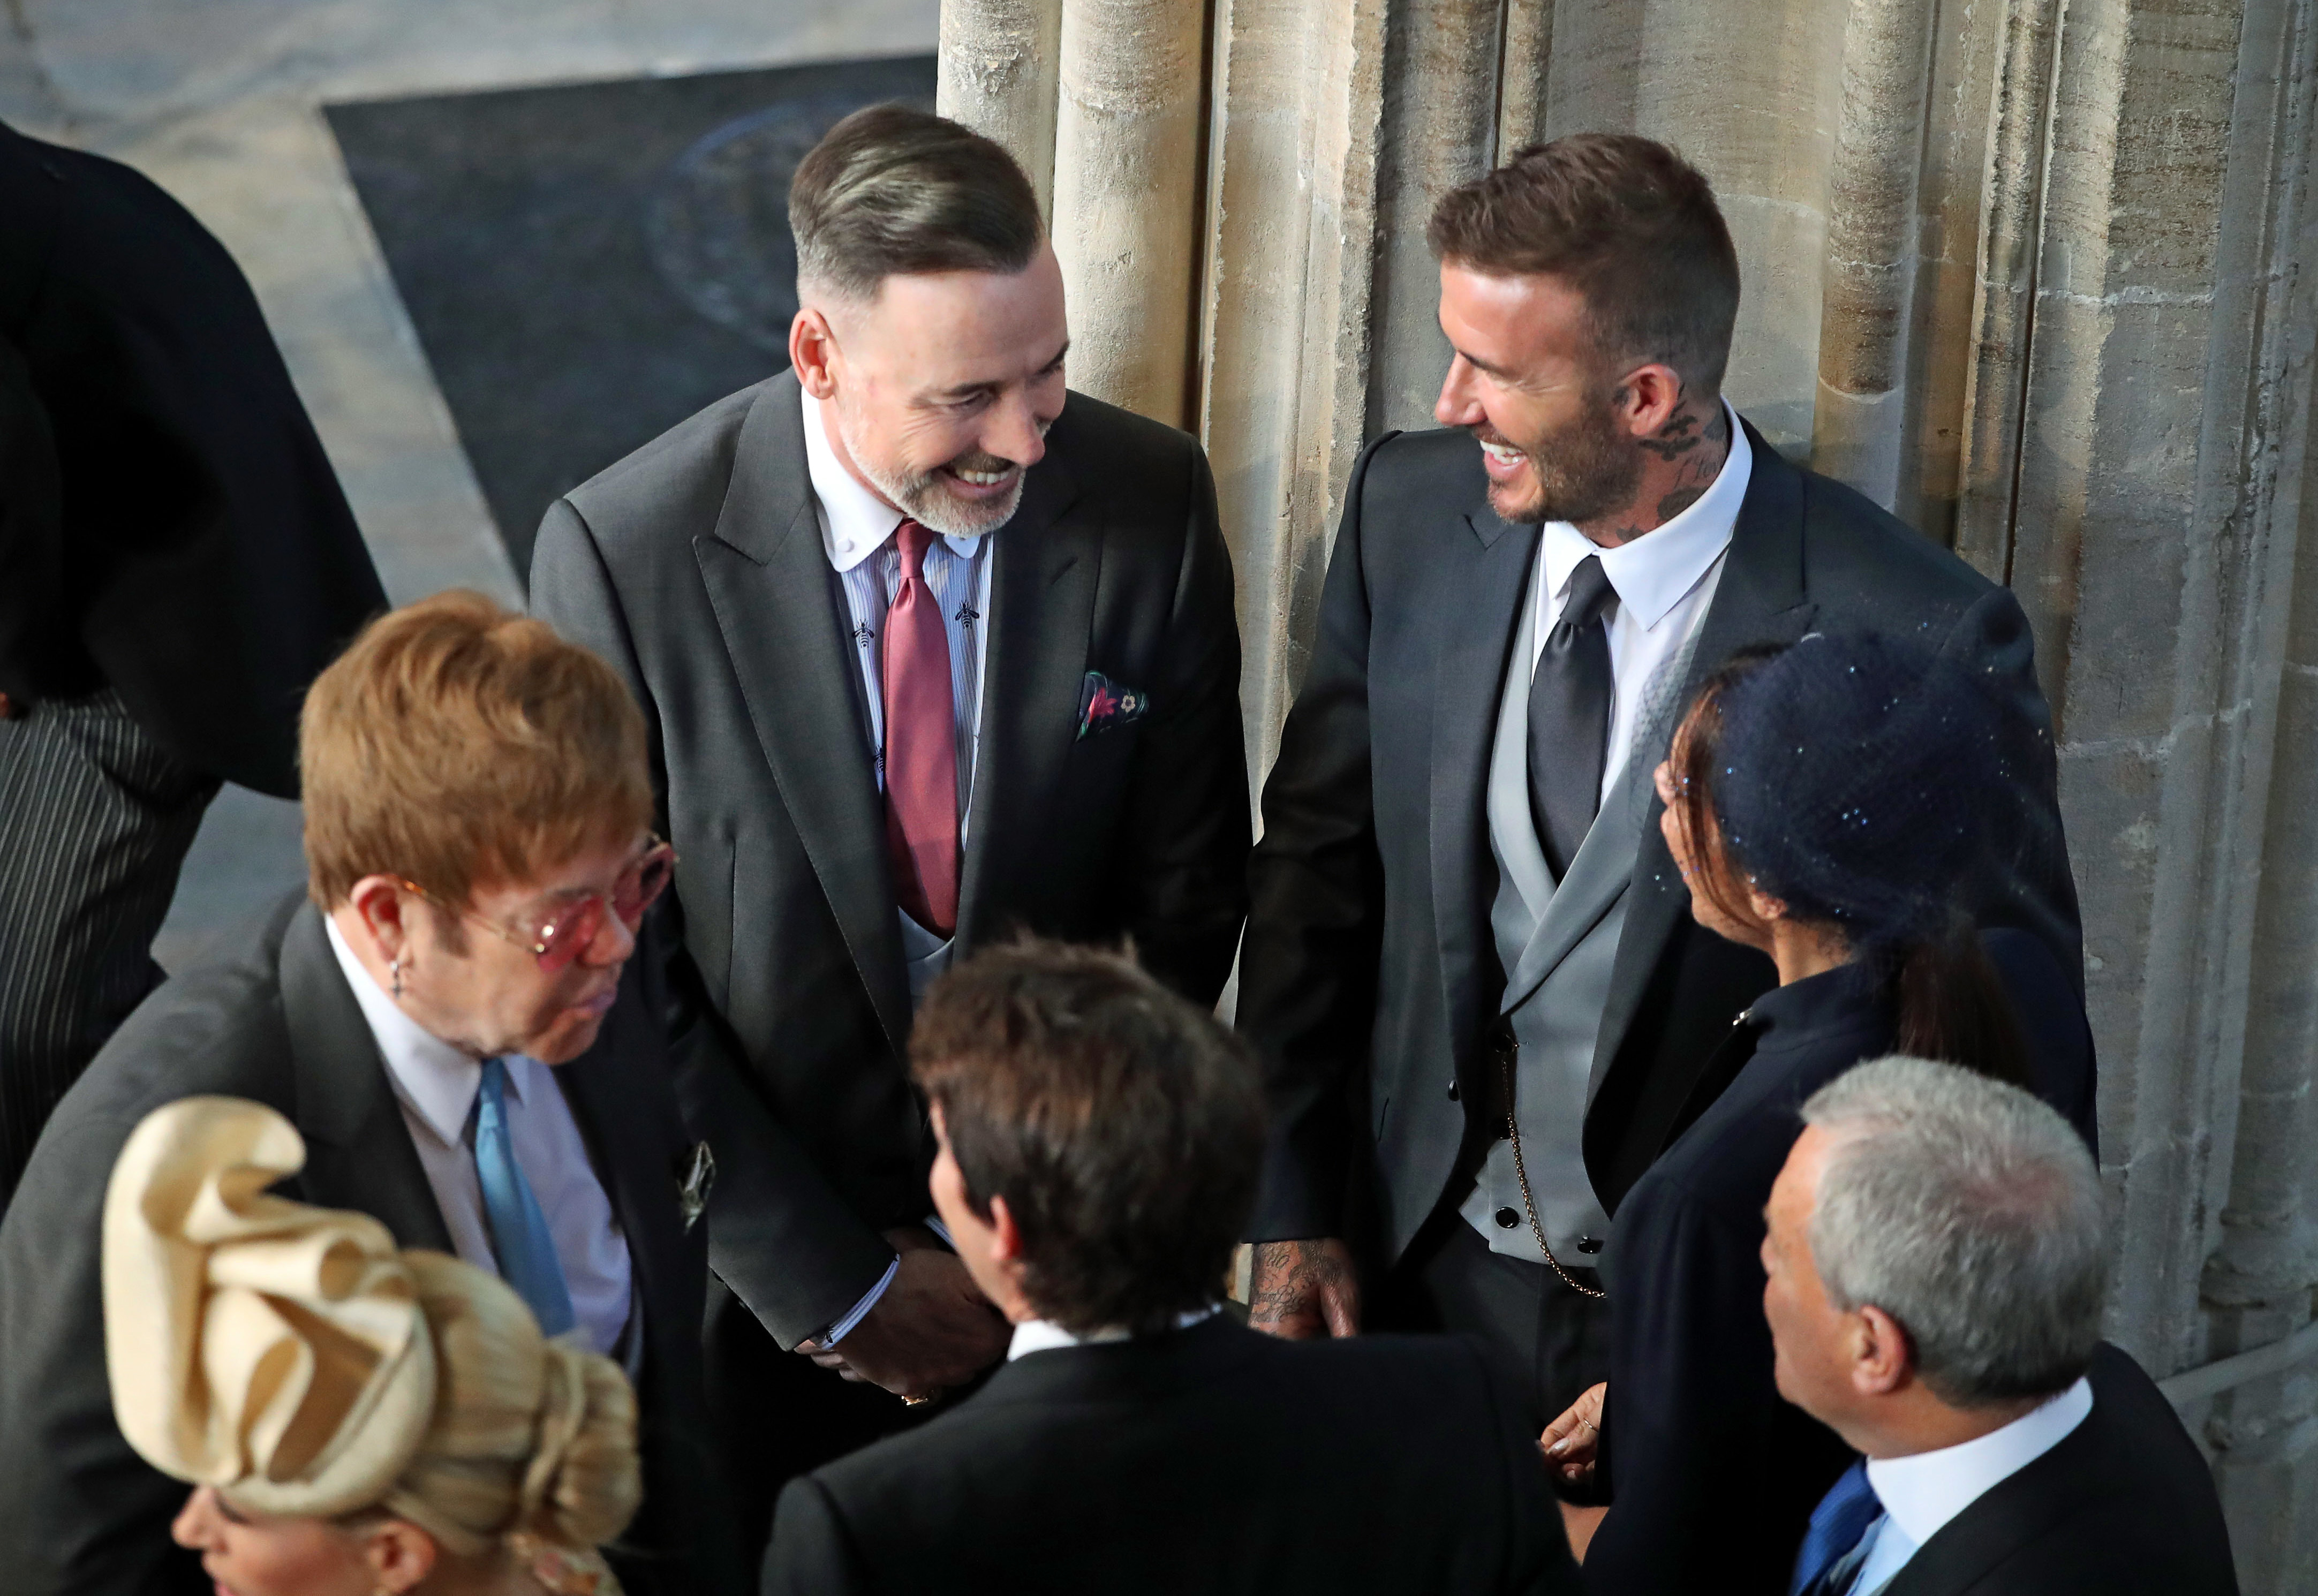 David Beckham and Victoria Beckham talk with Sir Elton John and husband David Furnish before the wedding of Prince Harry and Meghan Markle at St. George's Chapel at Windsor Castle on May 19, 2018.